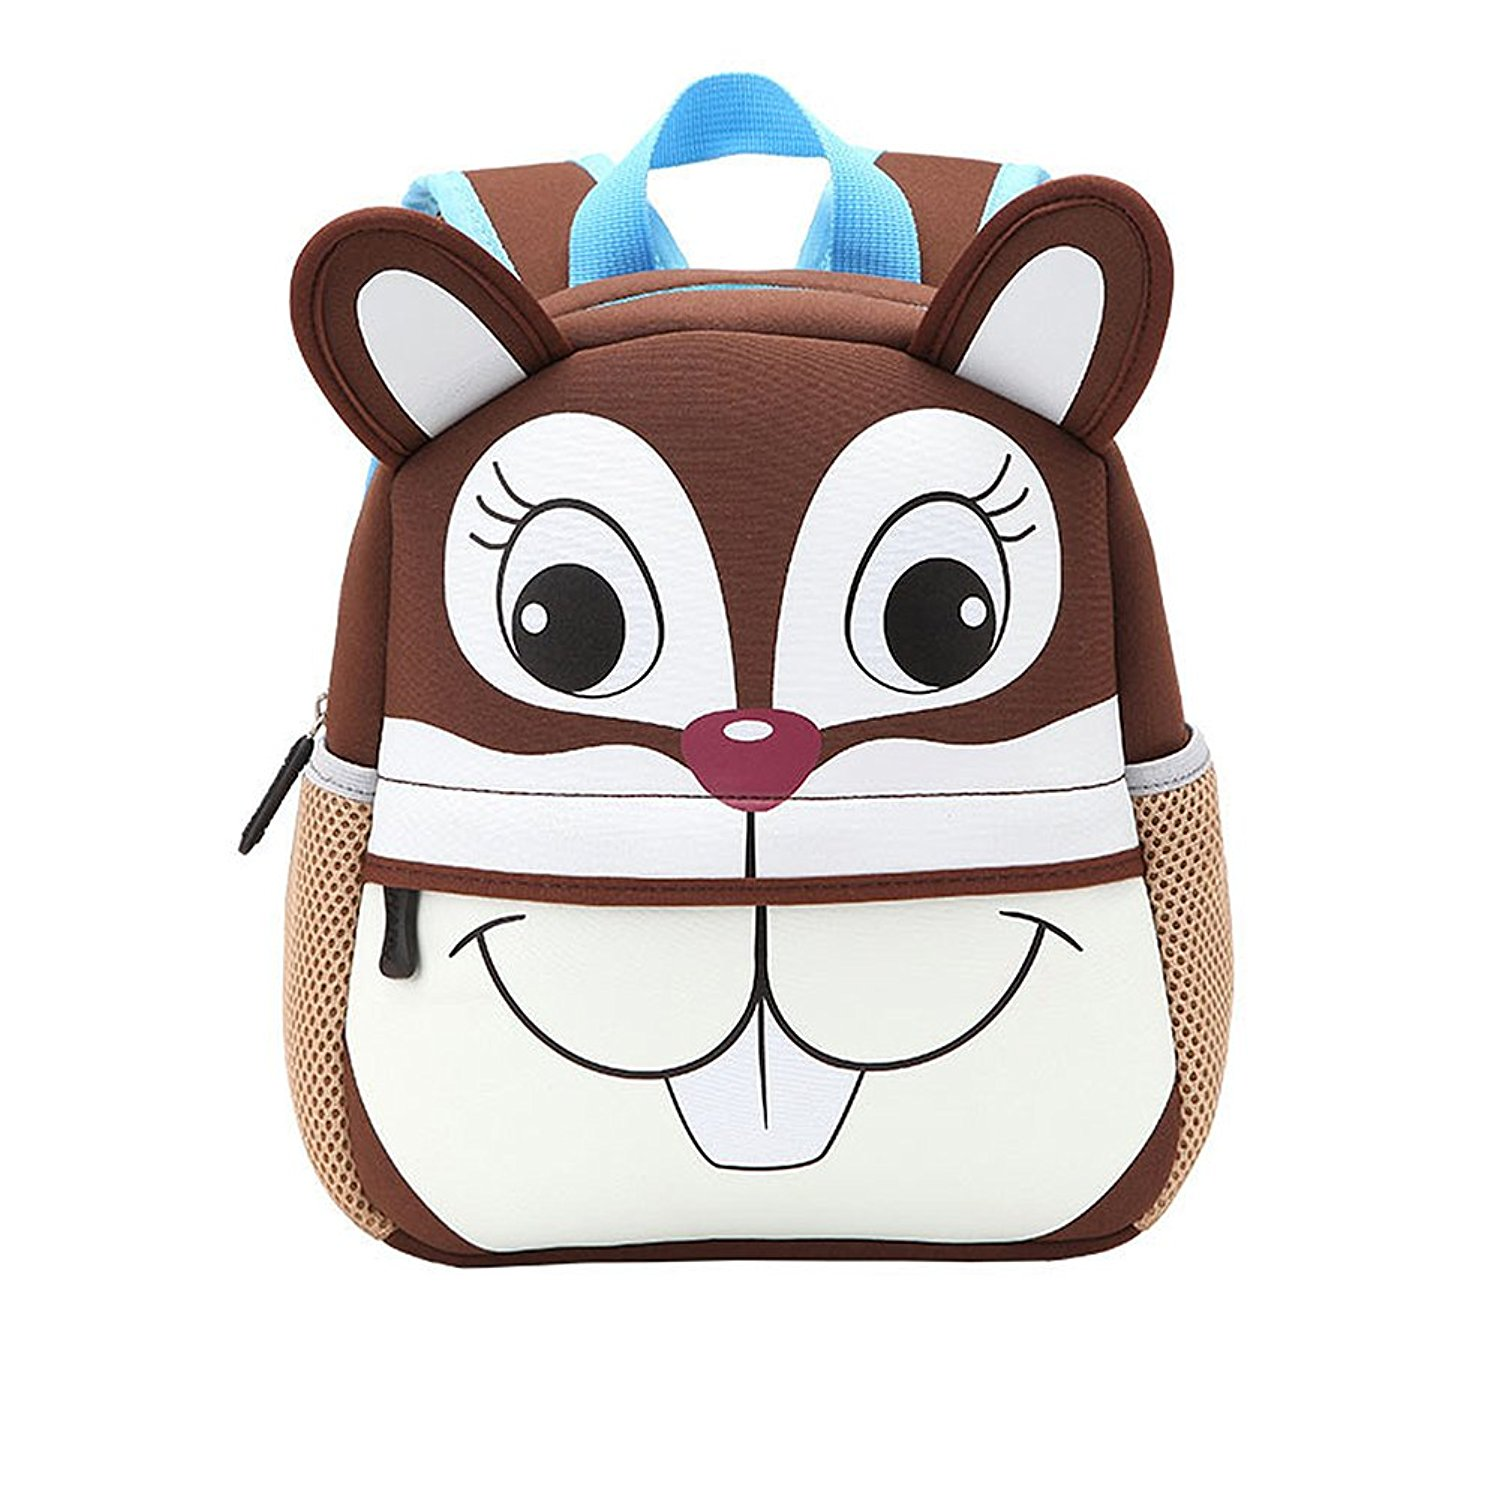 792d514eec Get Quotations · Kids Cute Animal Backpacks Baby Boys Girls Toddler Backpack  Preschool Waterproof Bags